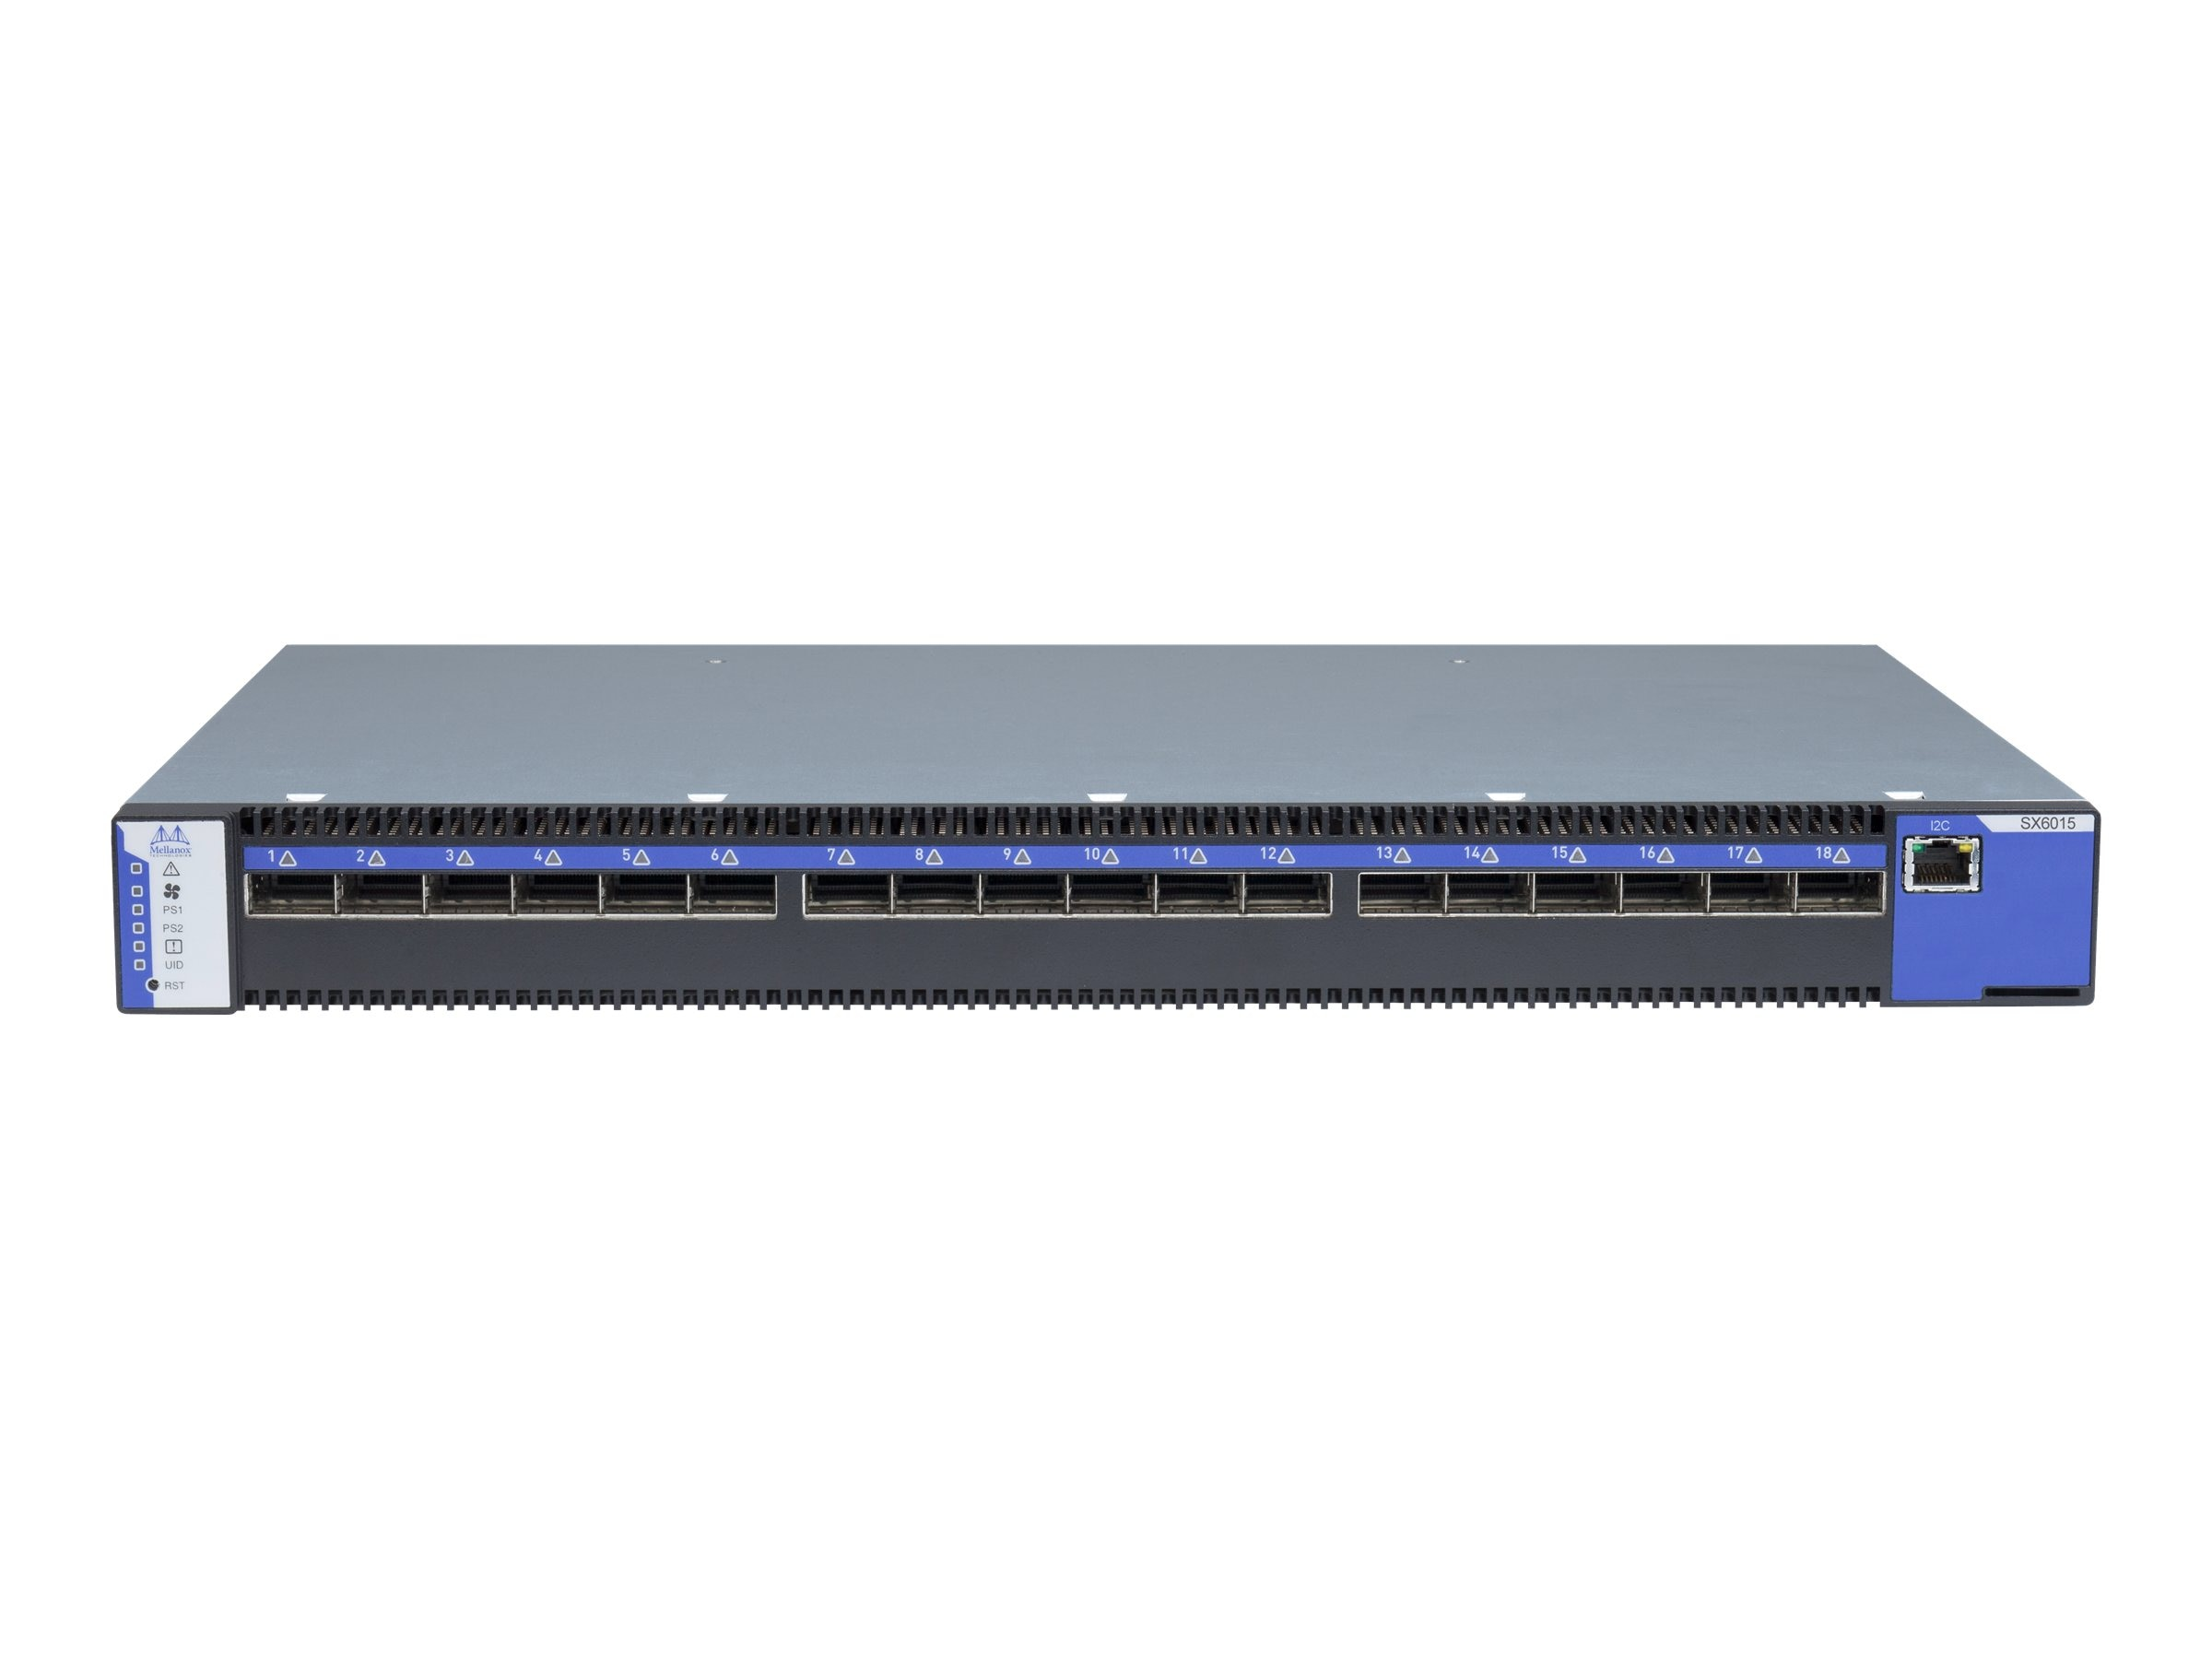 Mellanox SwitchX-2 Based 18-Port QSFP For10 1U Infiniband Switch